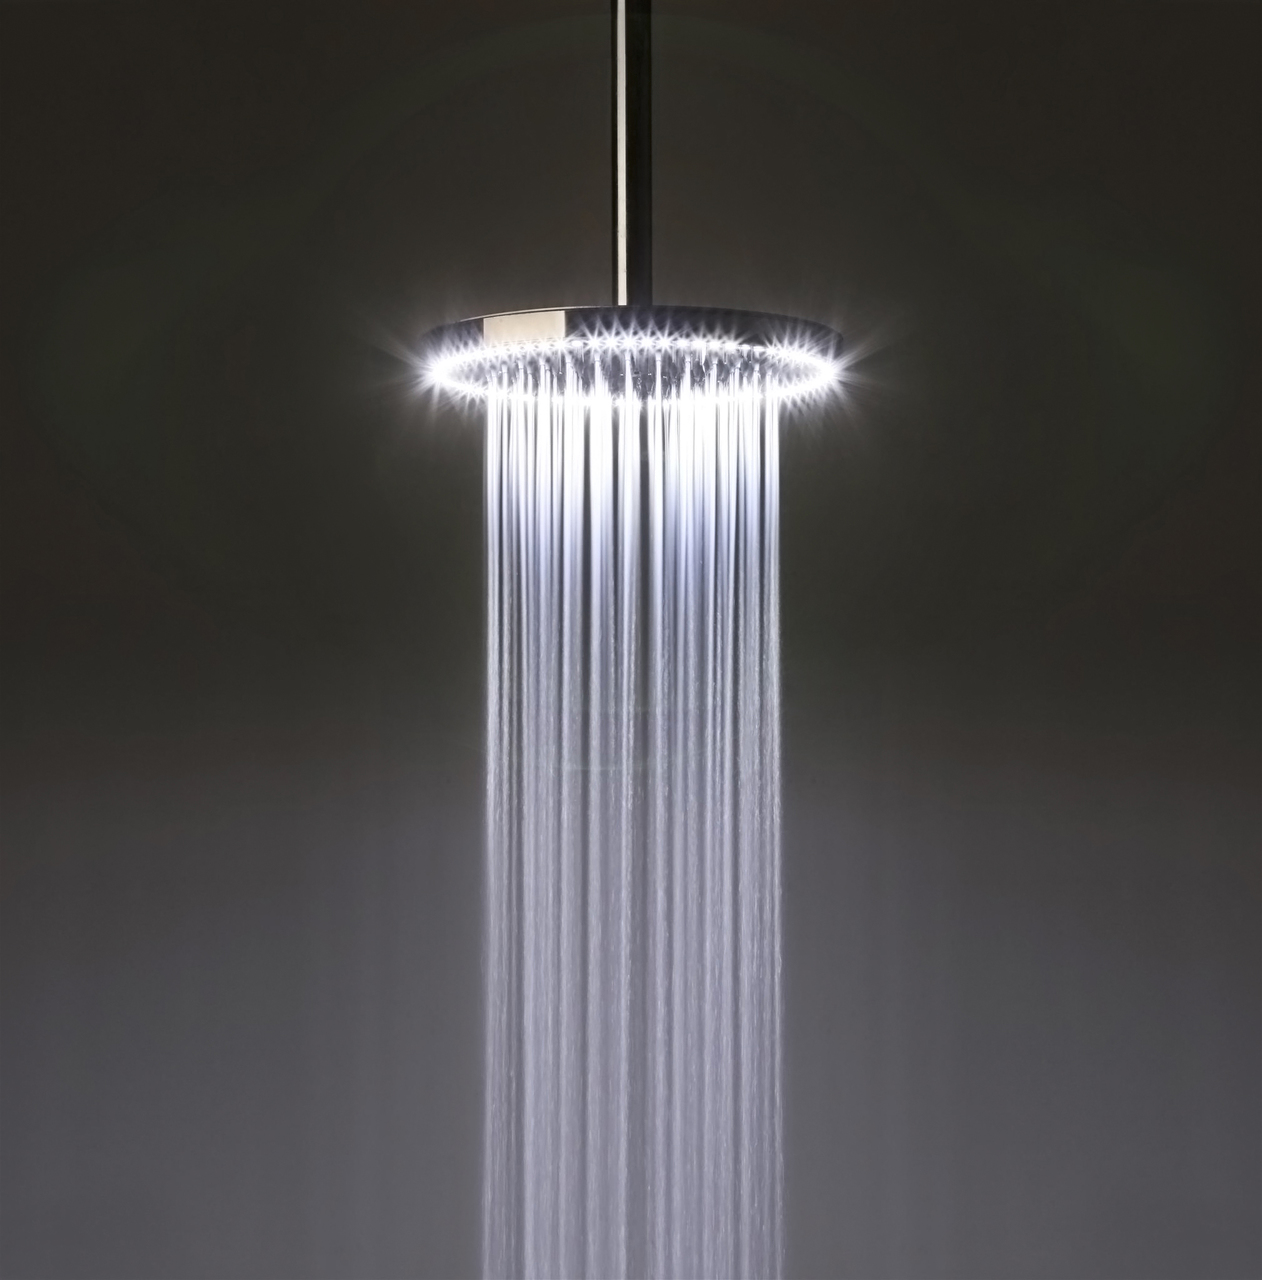 Sparkle WCRD 240 Top Mounted Shower Head (PD 022) 01 (web)